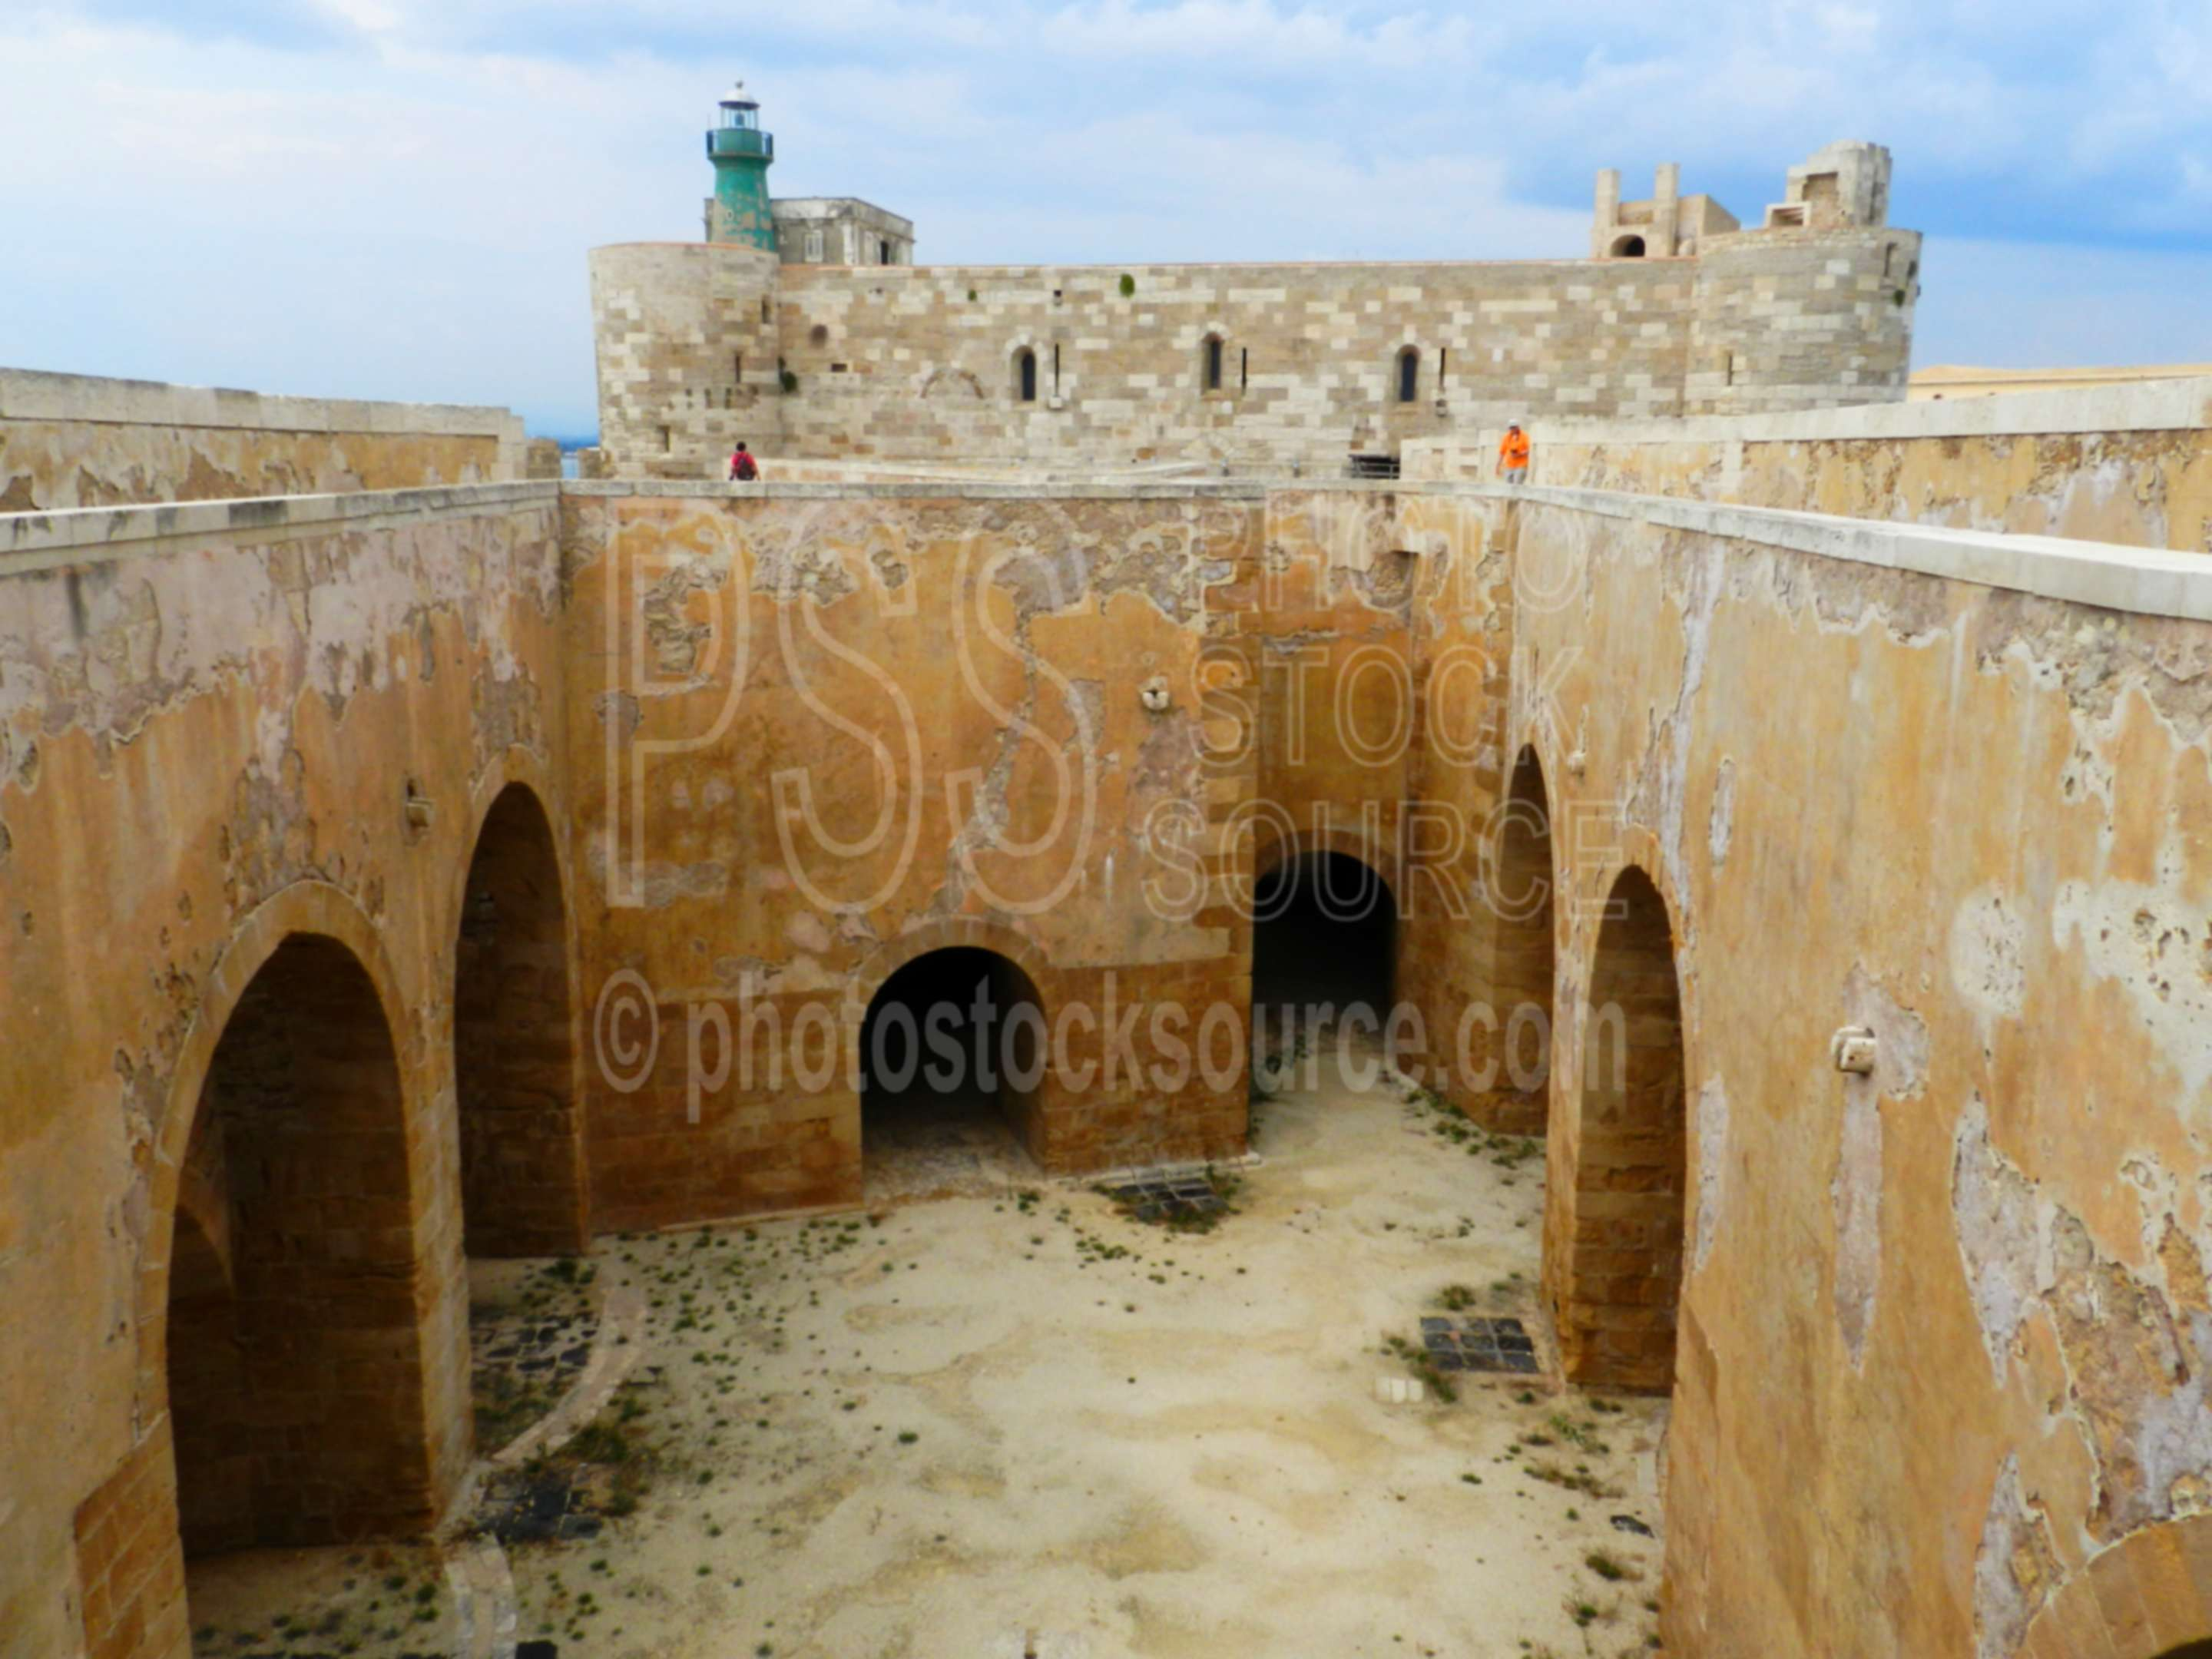 Castello Maniace Lighthouse,siracusa,ortigia,ortygia,castle,castello maniace,fort,fortification,defense,walls,lighthouse,faro